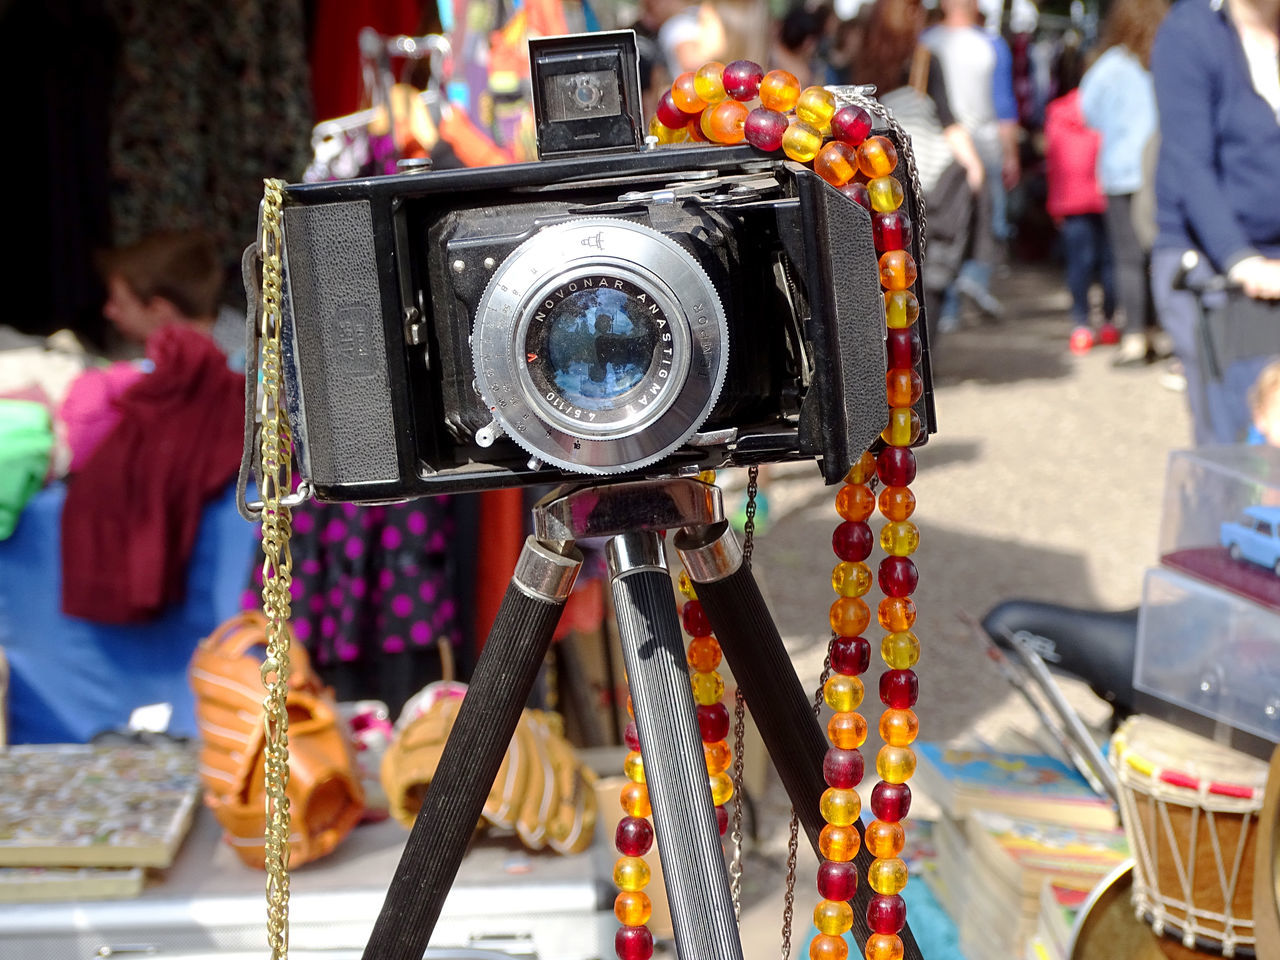 focus on foreground, day, technology, men, outdoors, camera - photographic equipment, close-up, people